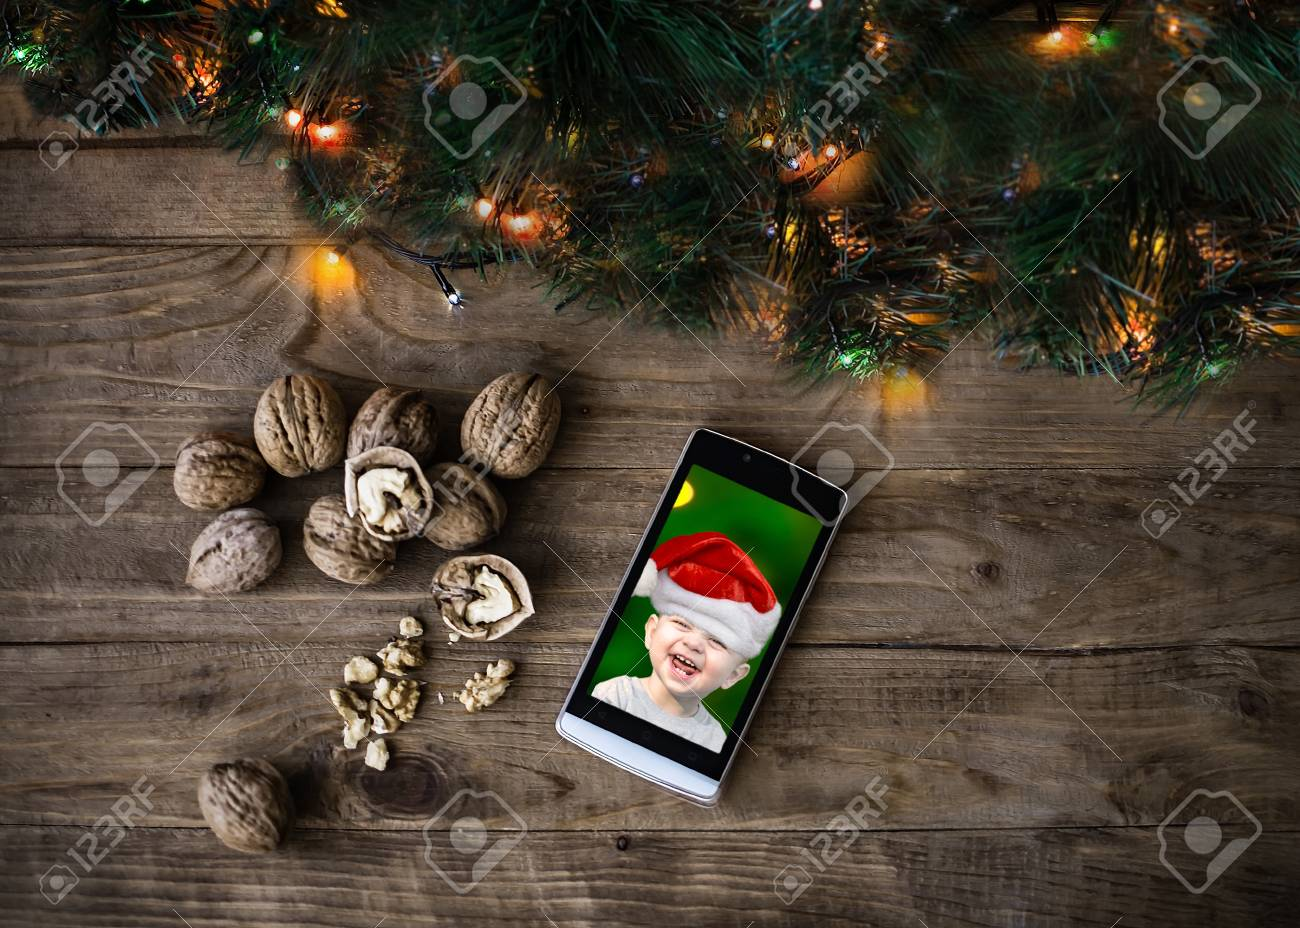 648c174975da1 ... lights on wooden background. Christmas and New Year card with copy  space. Mobil phone with a laughing baby in a red Santa Claus hat